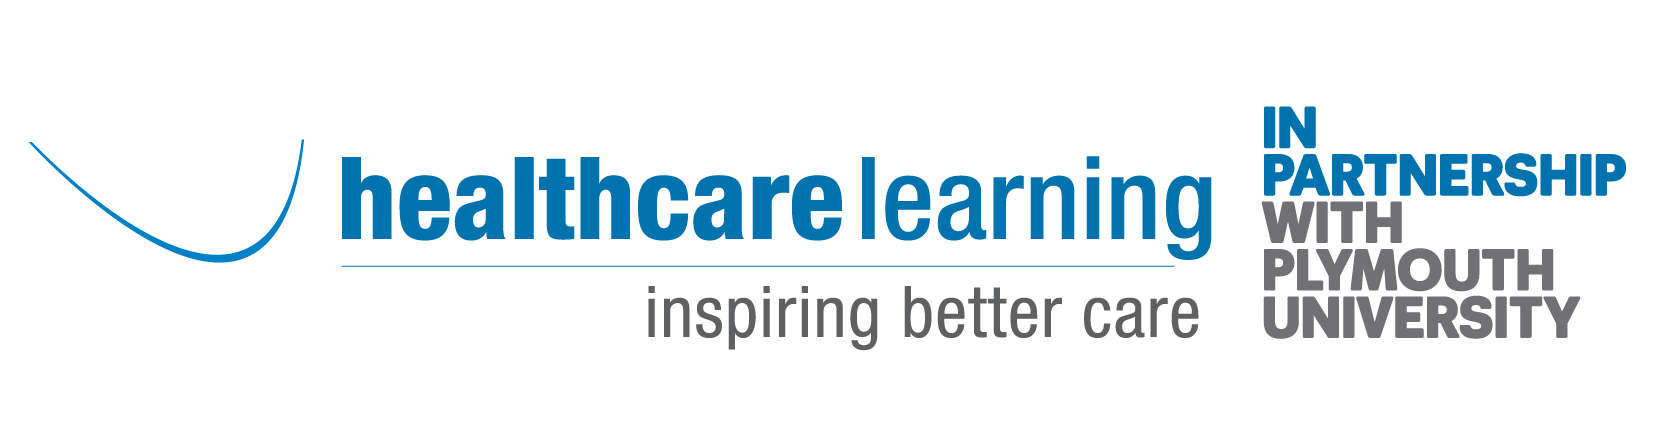 healthcare learning